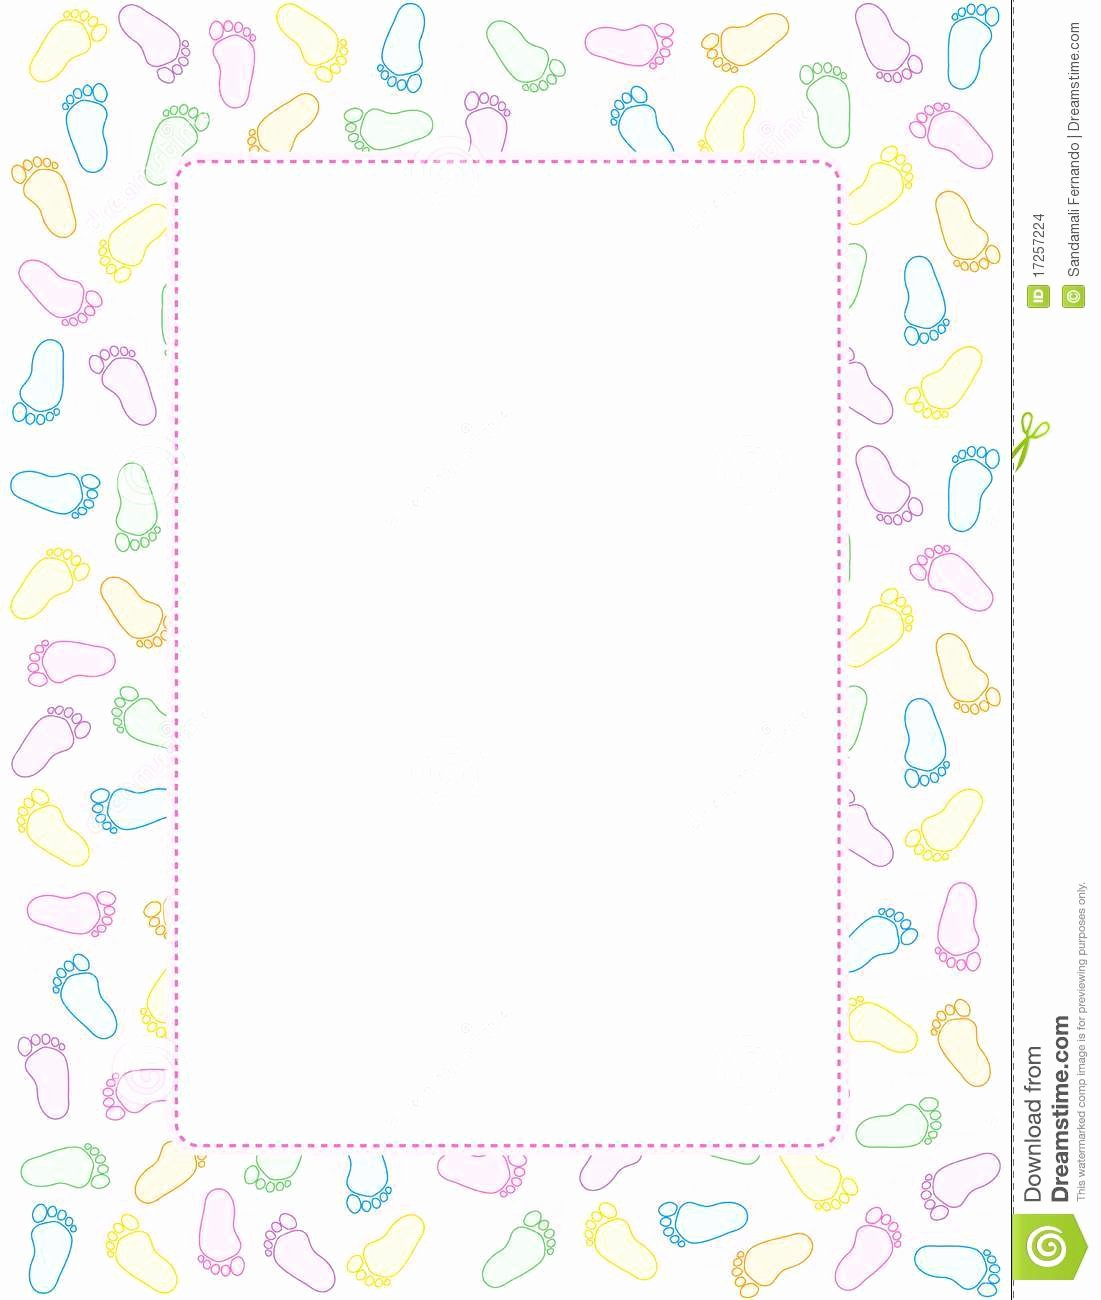 Baby Border for Word Document Luxury Baby Footprints Border Clipart Png and Cliparts for Free